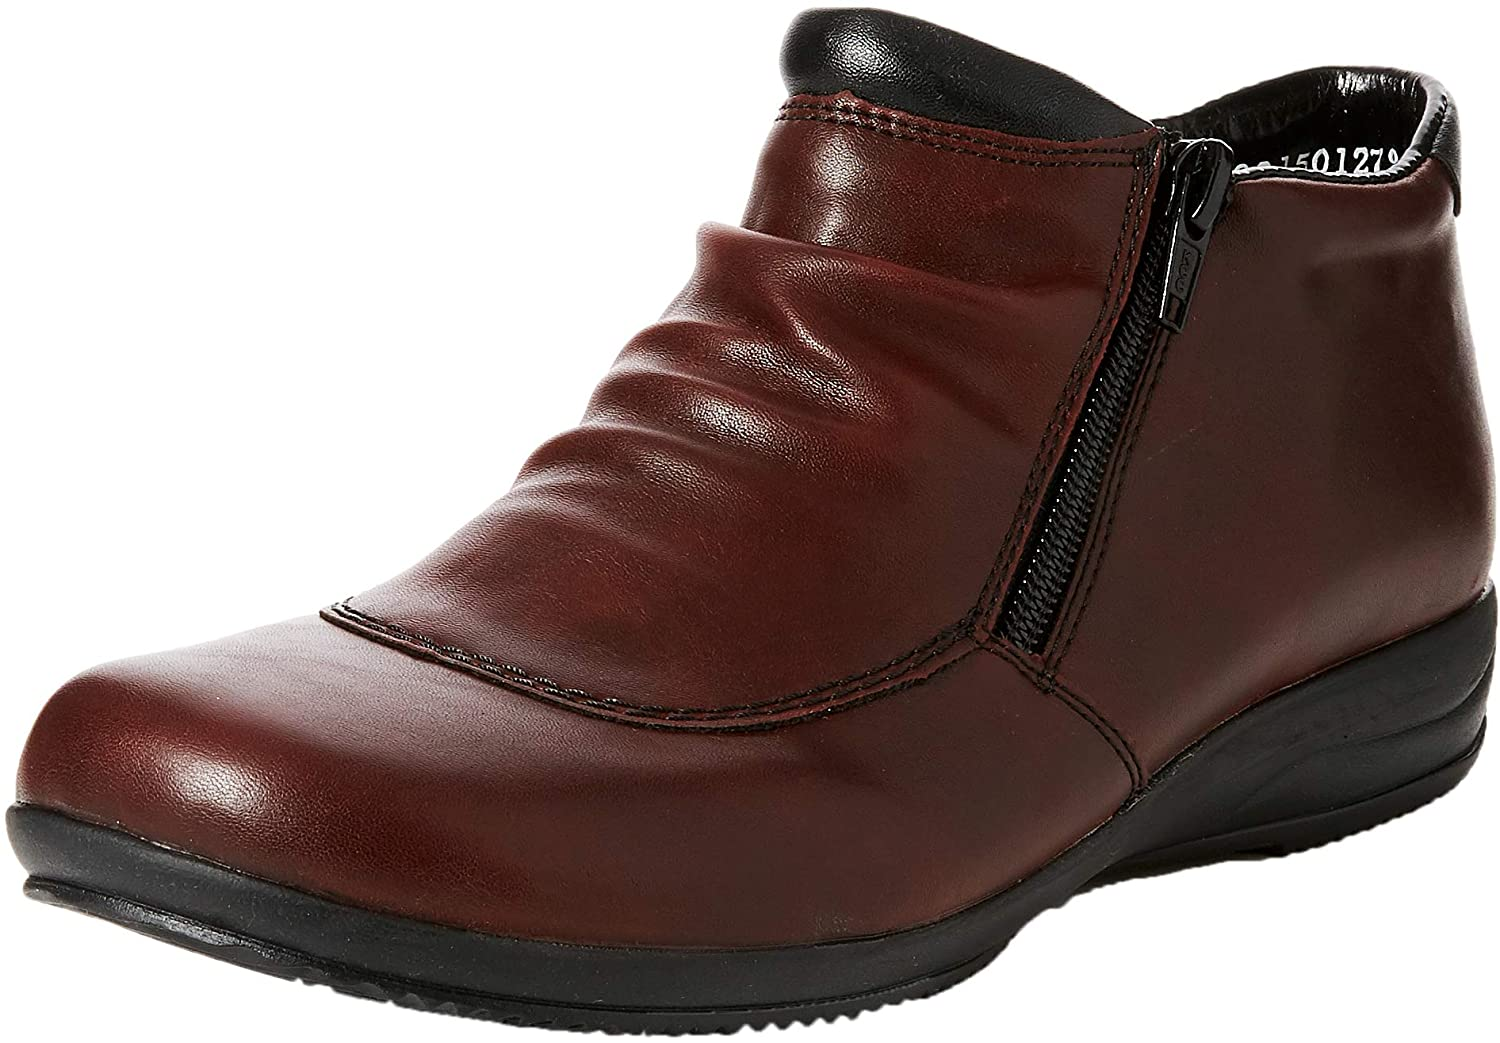 Rieker Women's Folly Twin Zip Ruched Leather shoes Boots